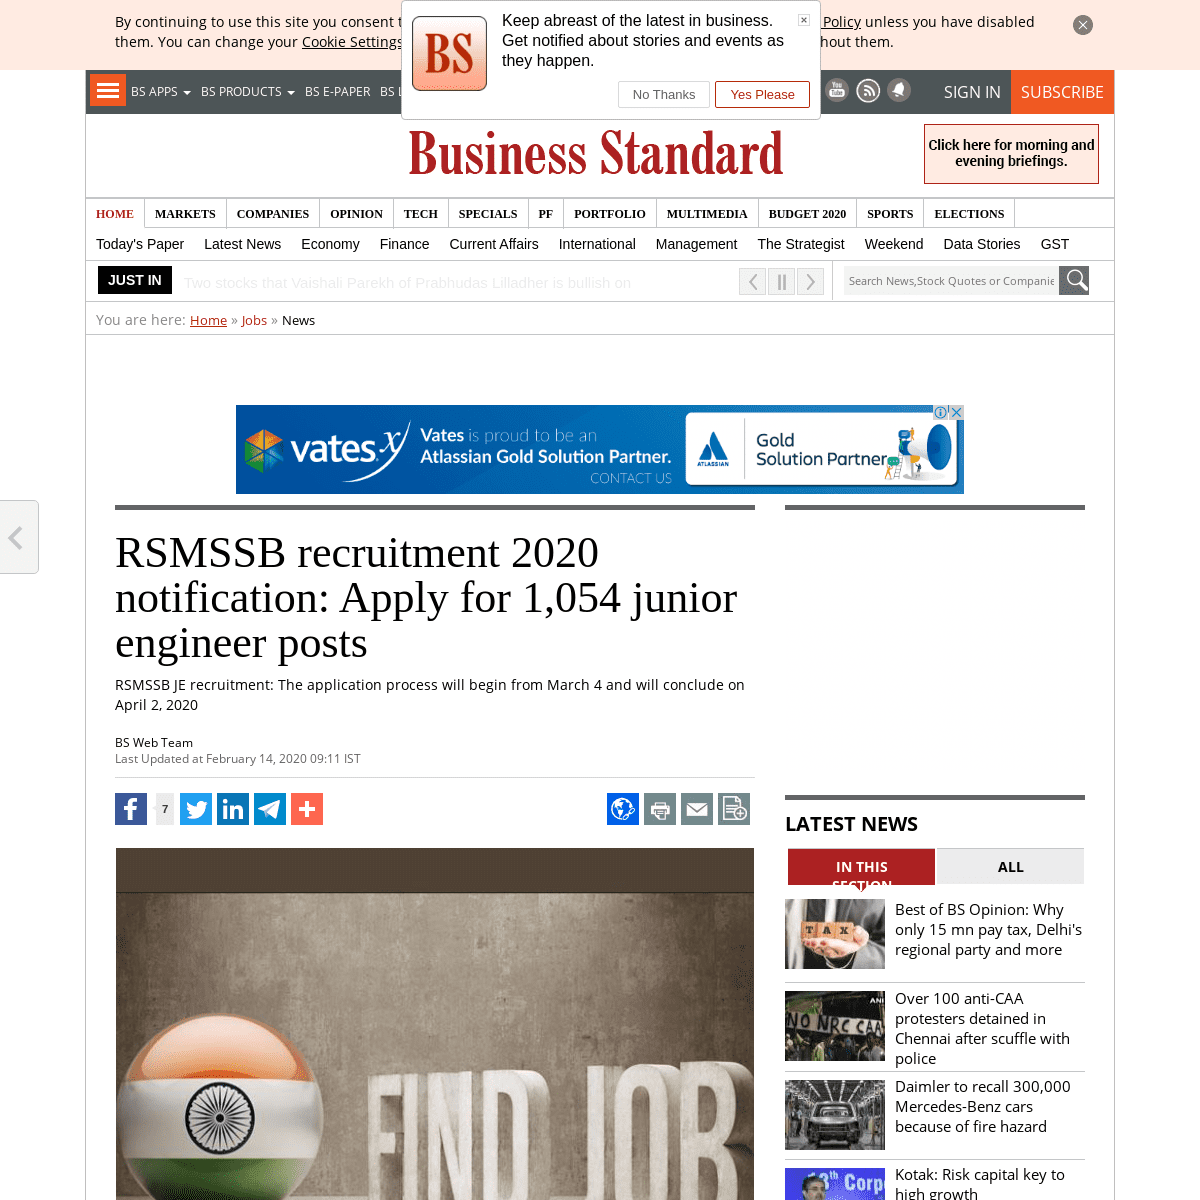 RSMSSB recruitment 2020 notification- Apply for 1,054 junior engineer posts - Business Standard News